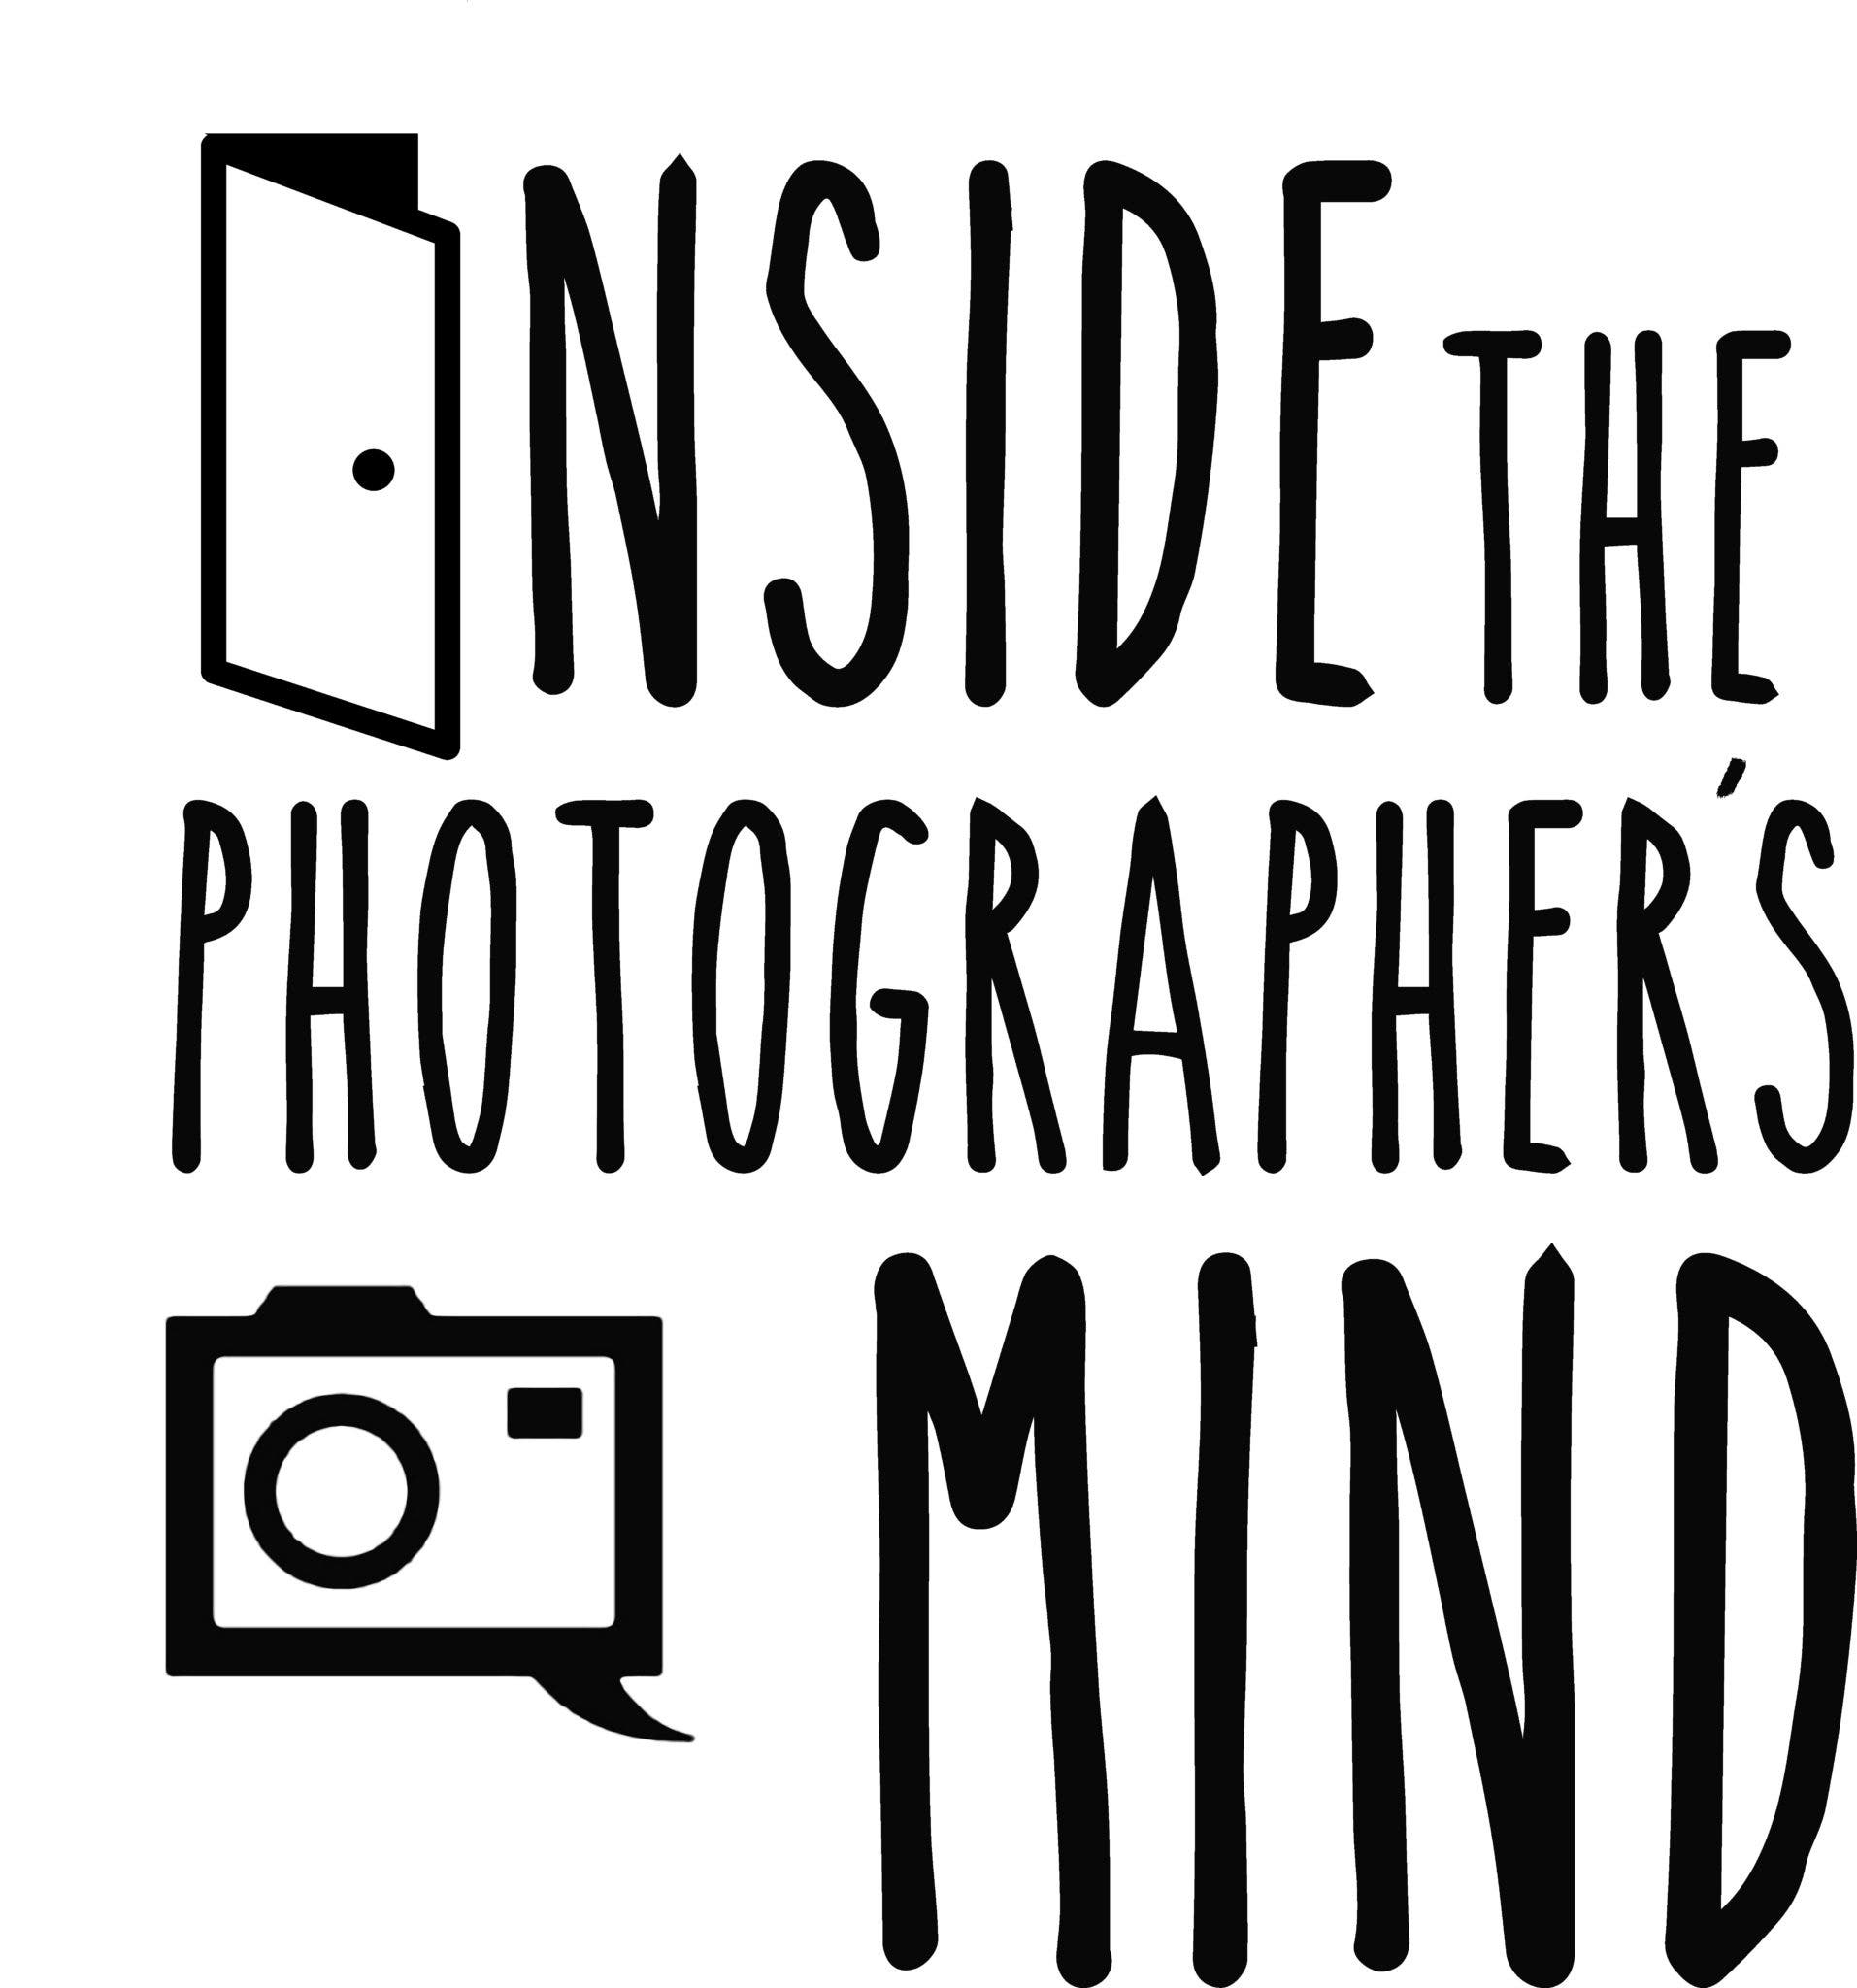 Introducing: Inside the Photographer's Mind with Chris Gampat on Adorama TV